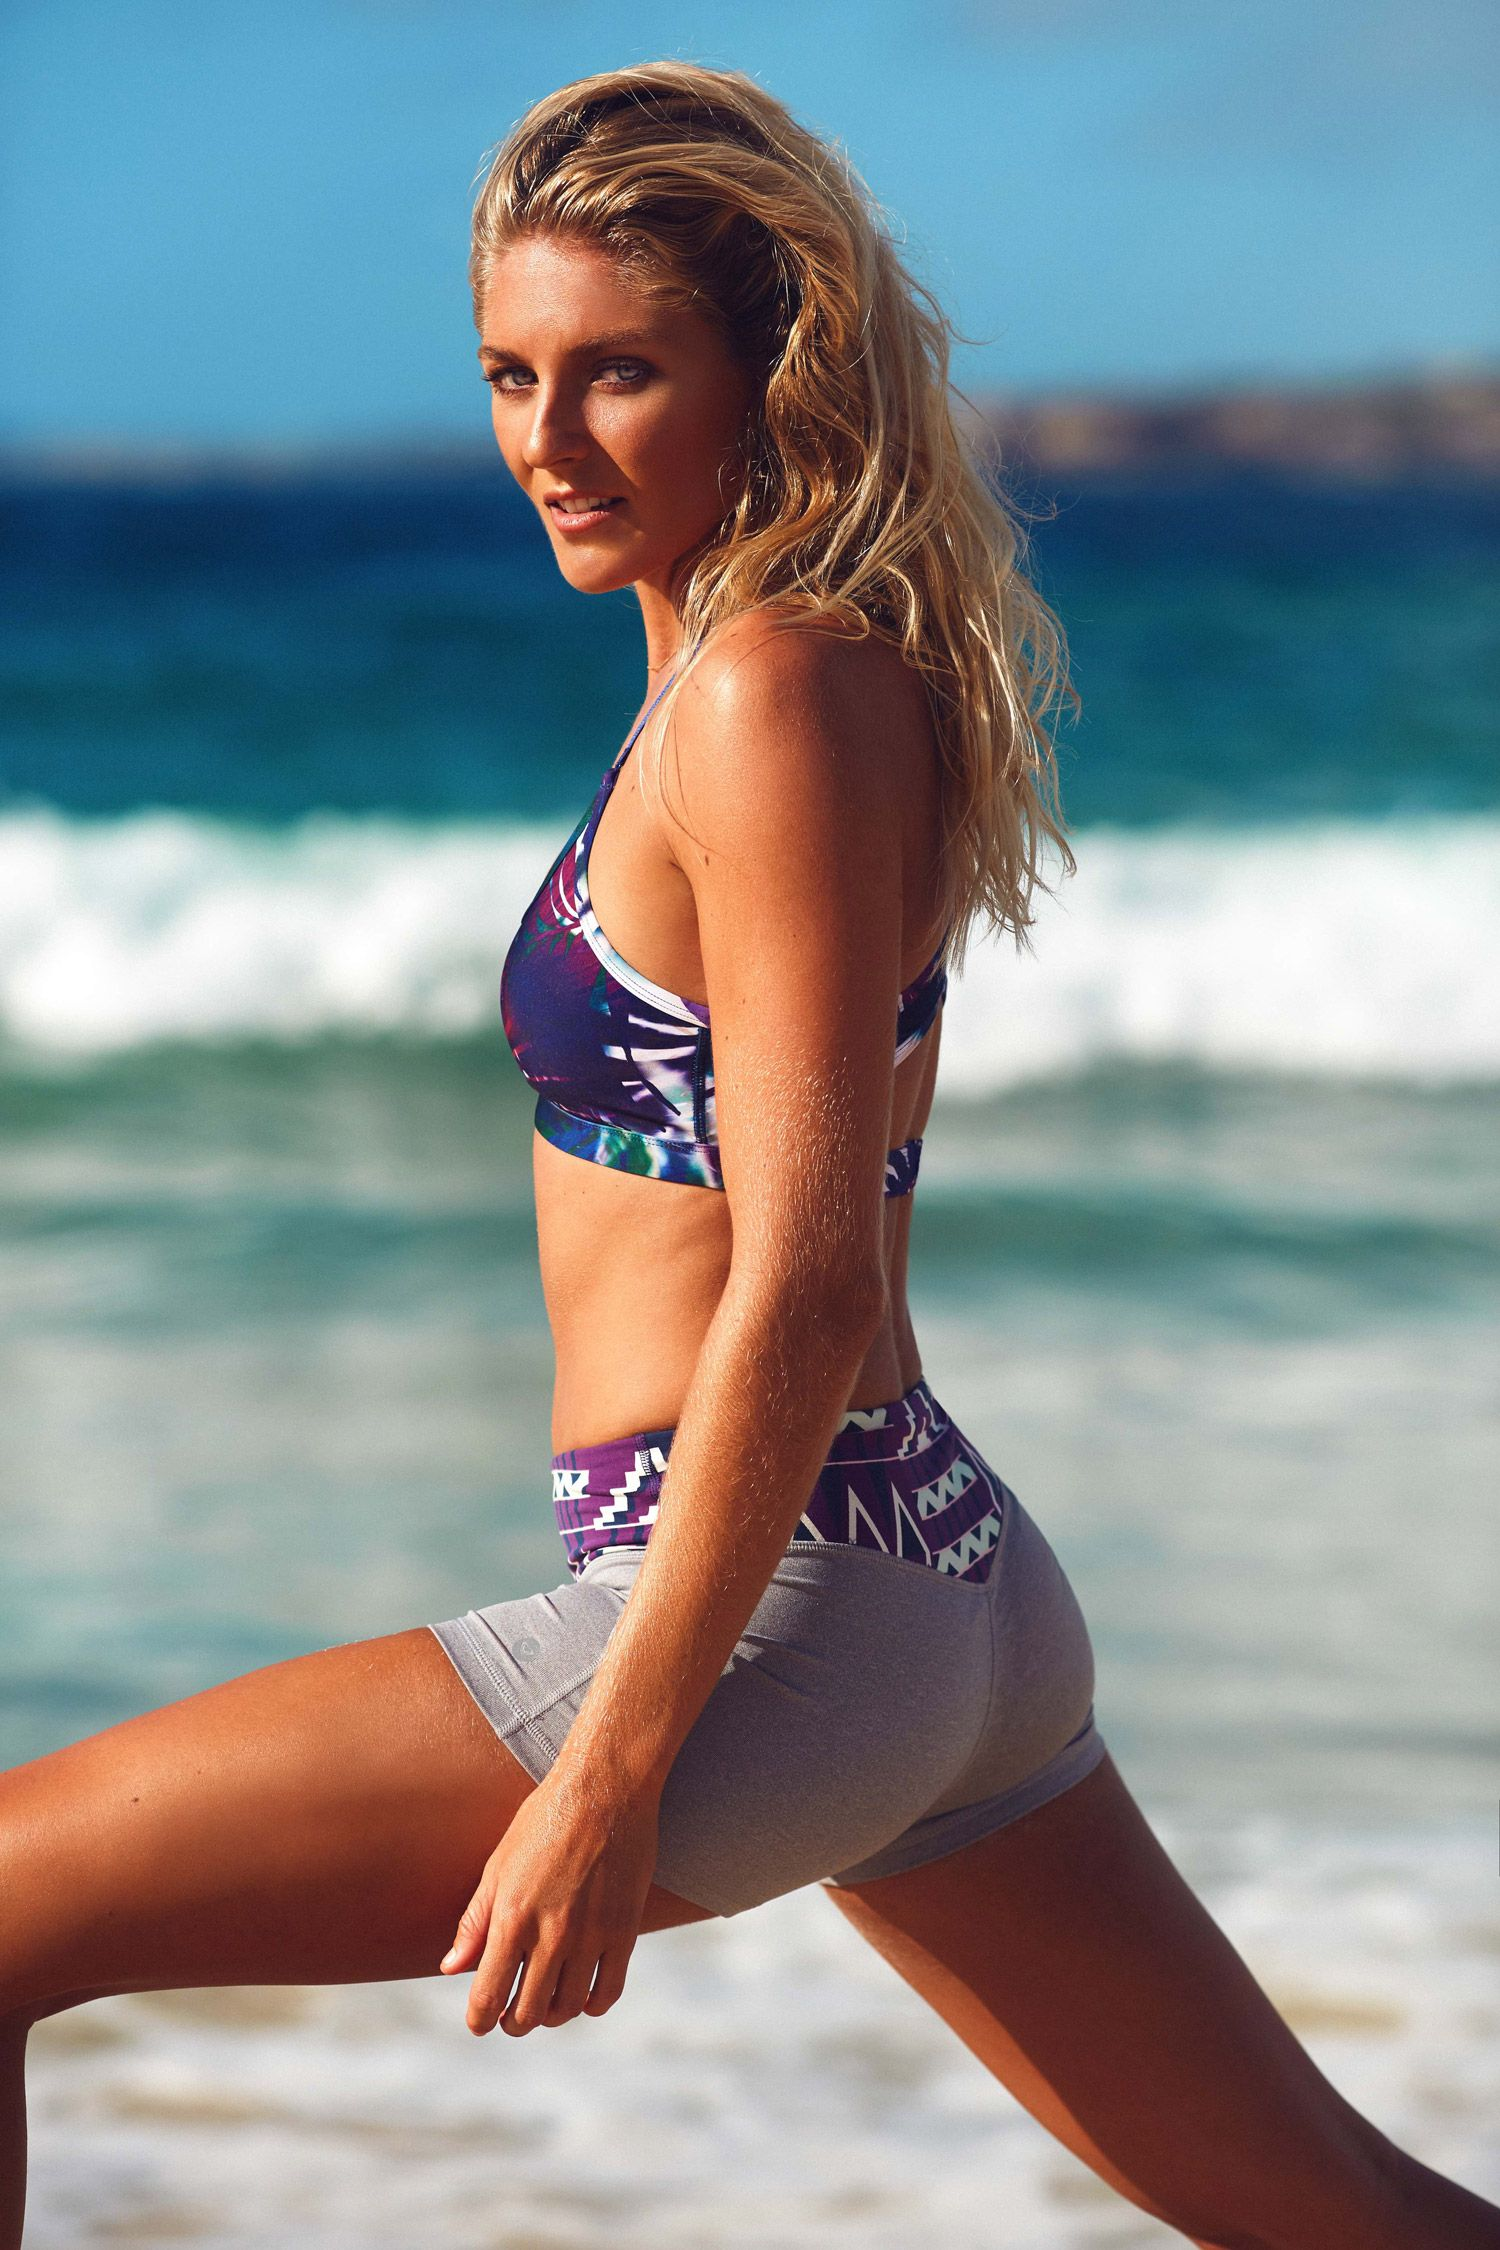 Steph Gilmore stretching it in style in the latest # ...